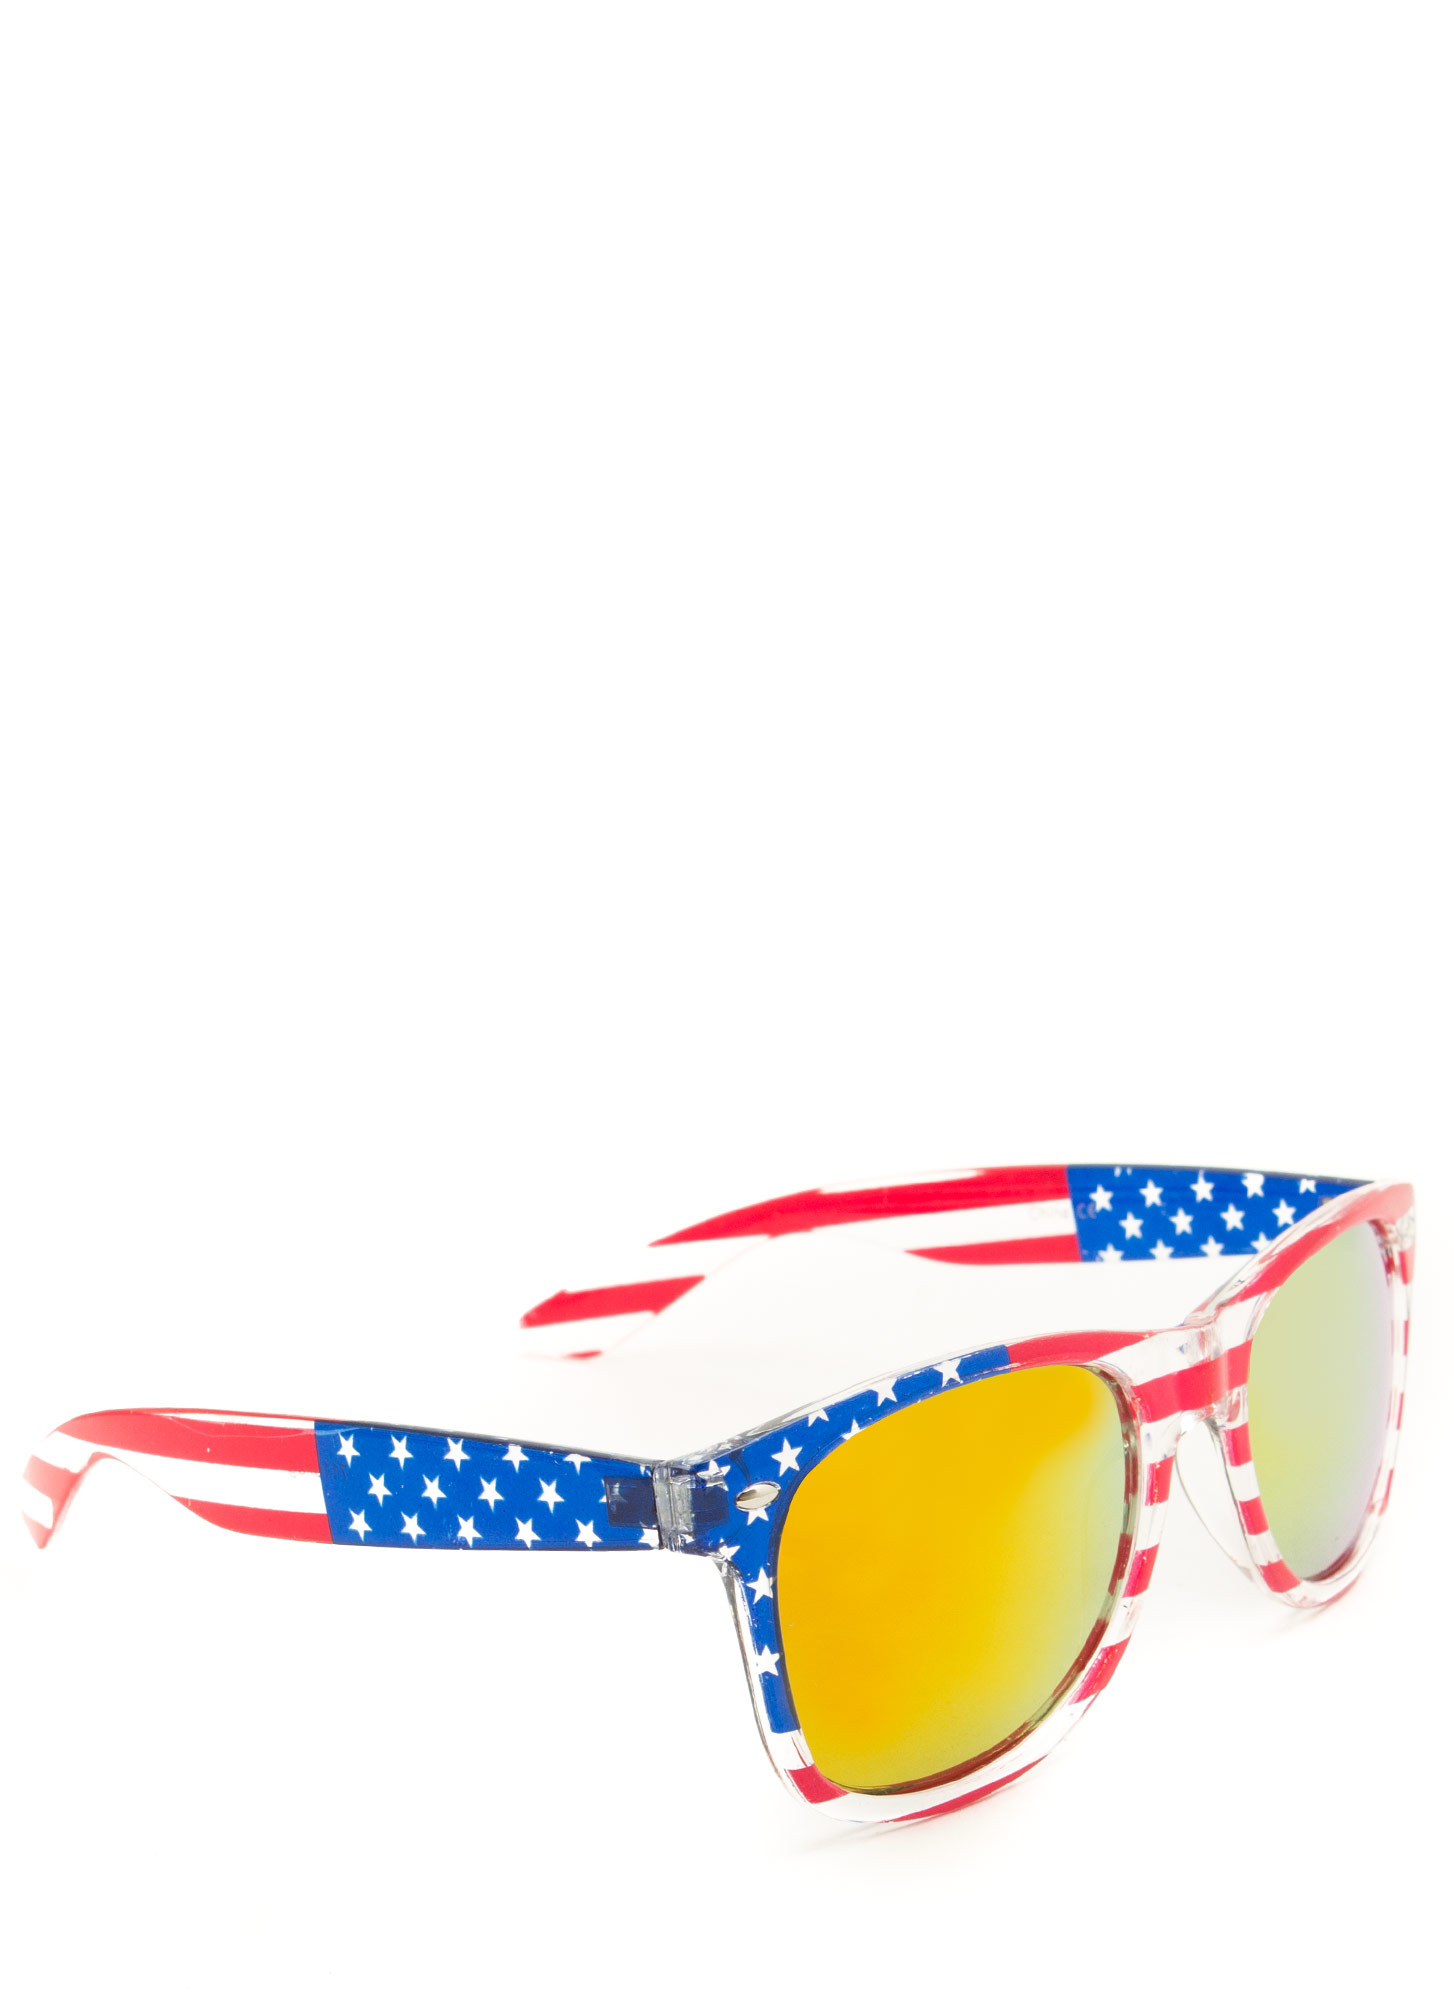 Stars N Stripes Sunglasses ORANGE (Final Sale)